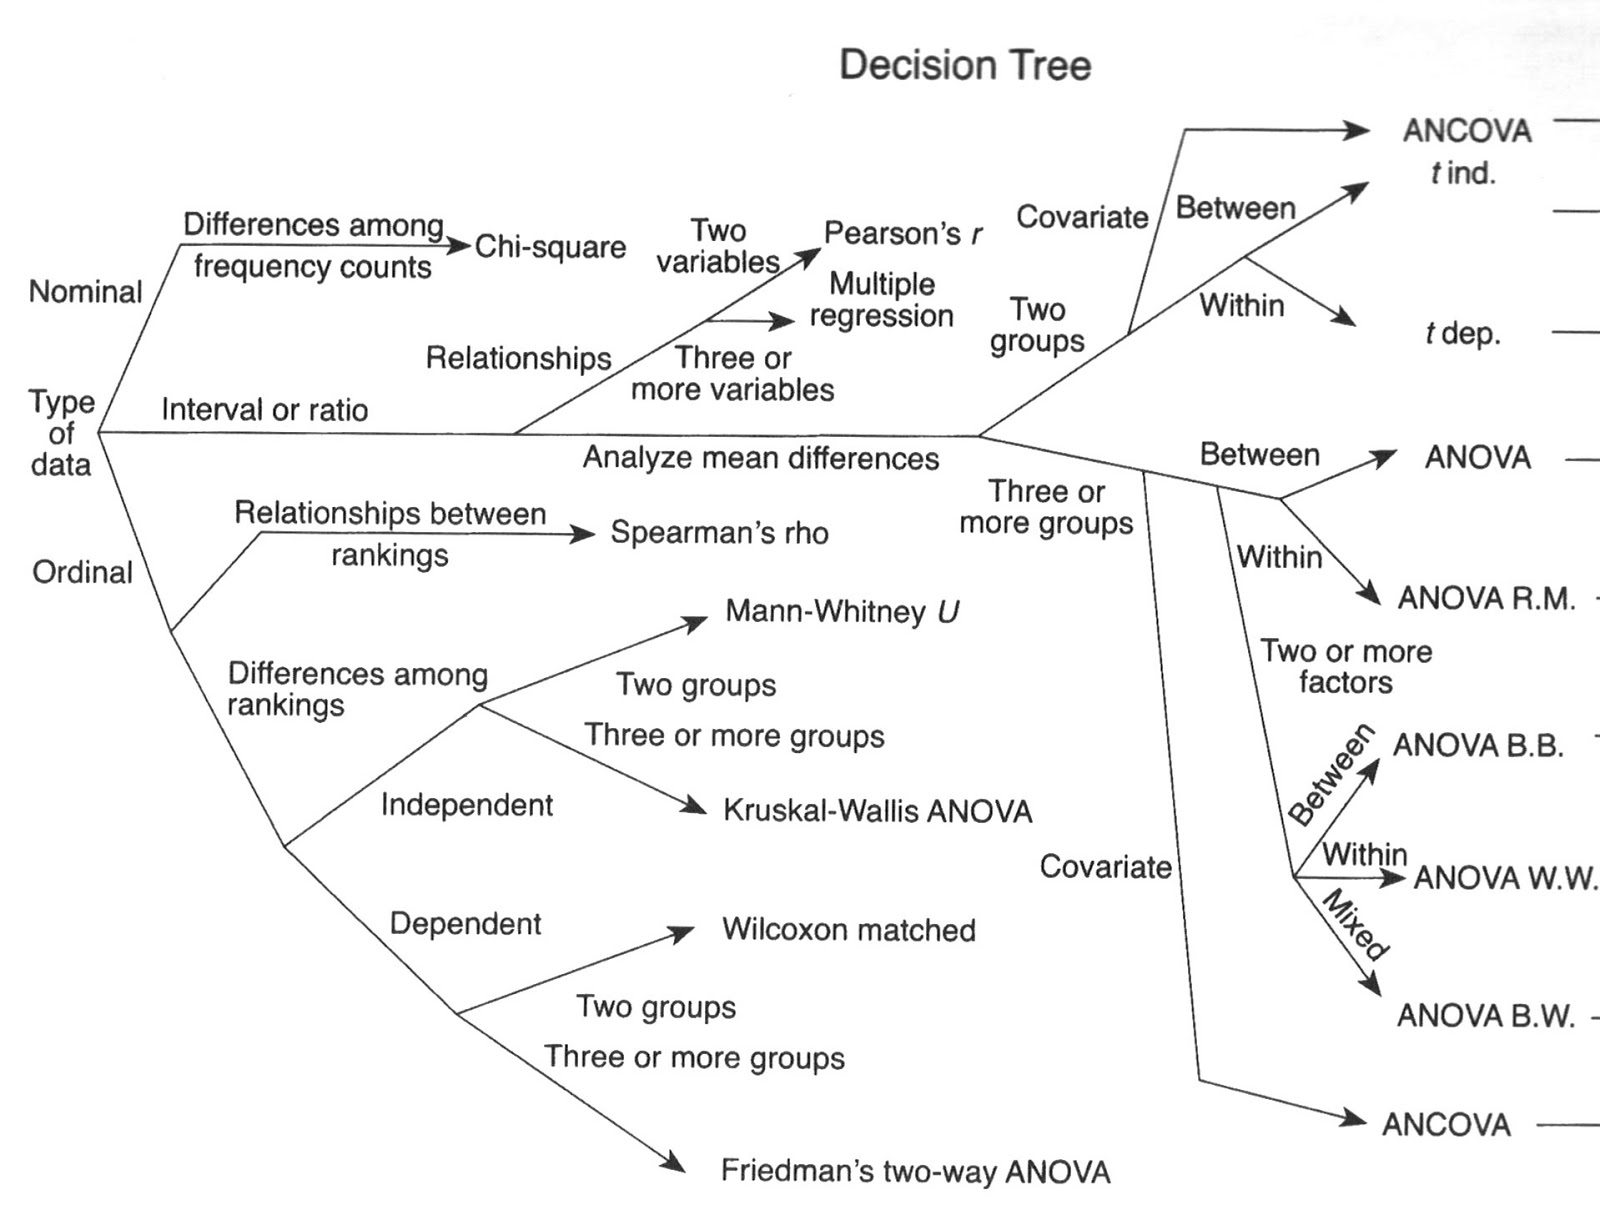 online decision tree maker workflow samples netflix error